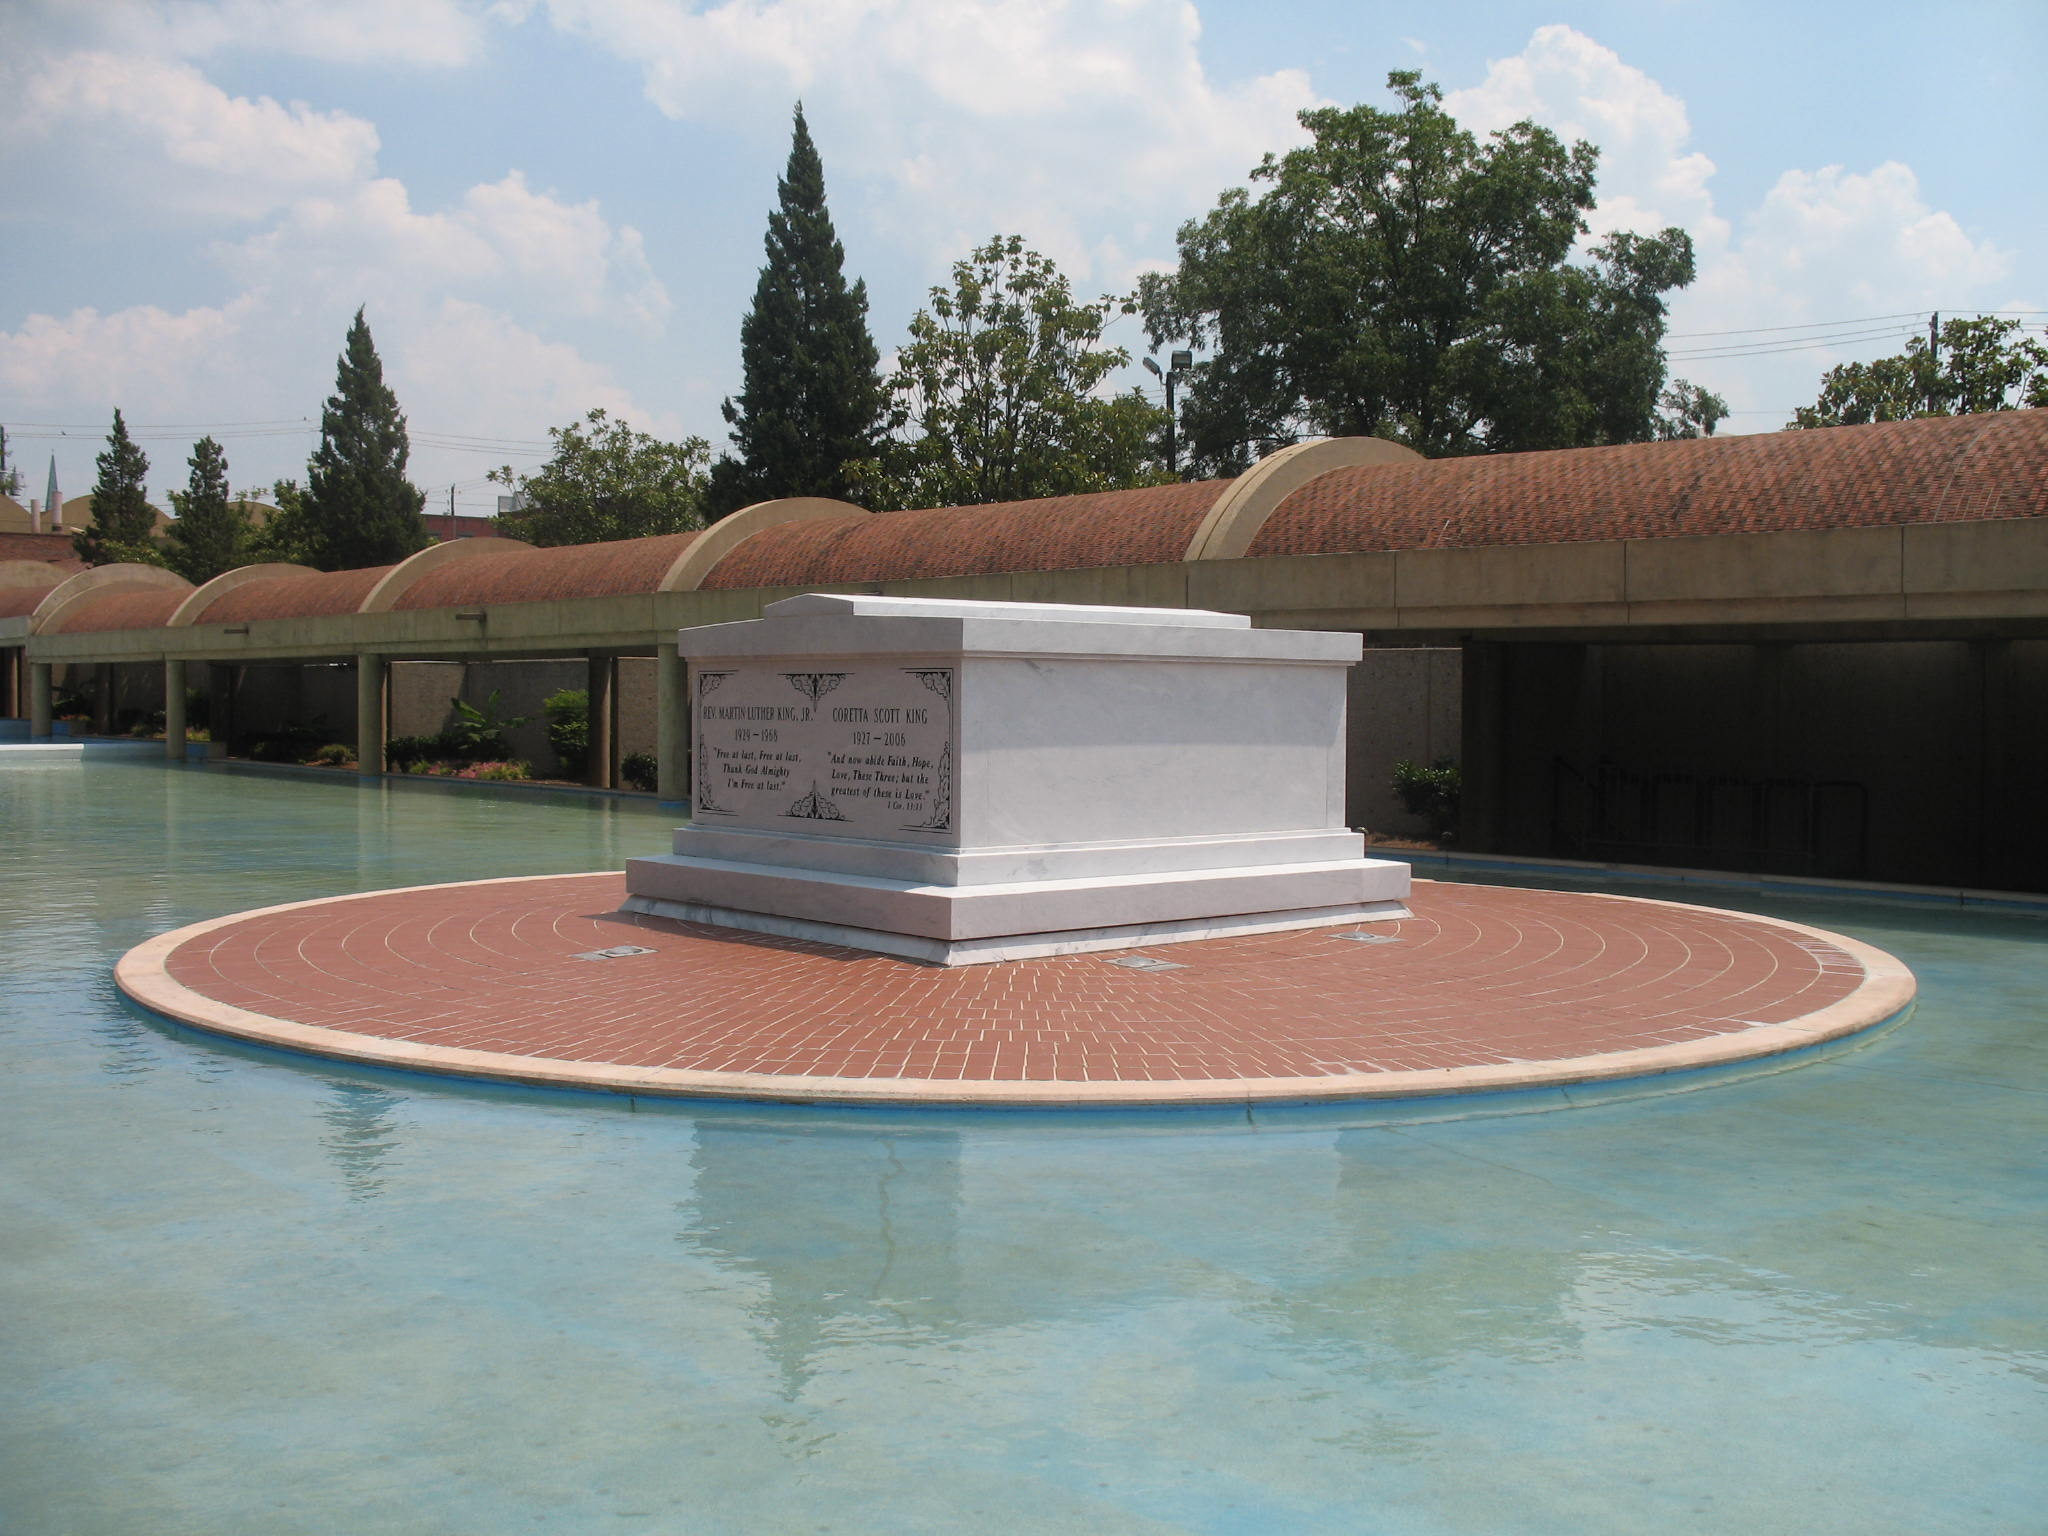 Martin Luther King and Coretta Scott King's sarcophagus, located on the grounds of the Martin Luther King Jr. National Historic Site in Atlanta, Georgia